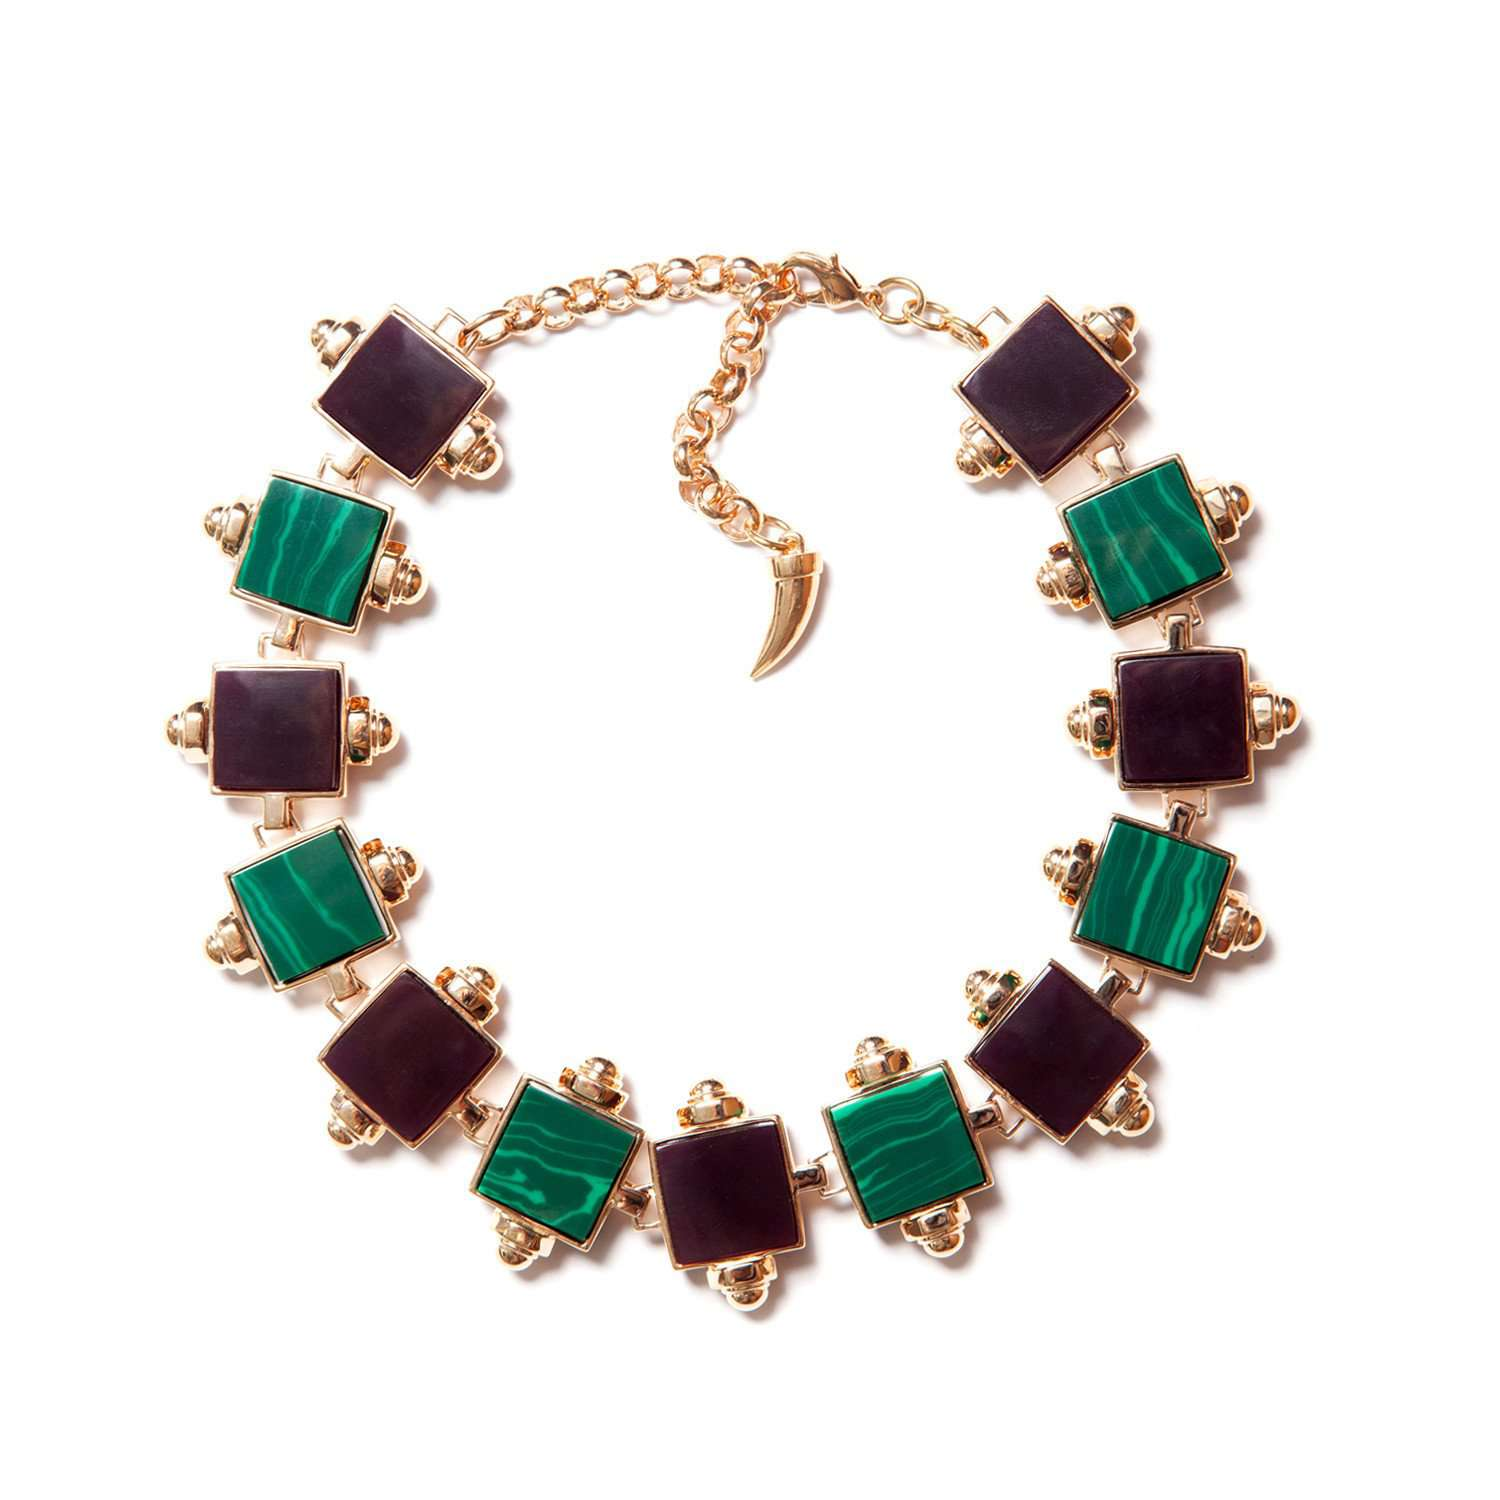 Yellow gold plated choker necklace with purple and malachite resin cube details.   This signature piece will allow you to make a bold statement this season. Its luxurious yet extravagant shape would be a welcome addition to your look. Clever and tasteful selection of colours will suit any outfit.